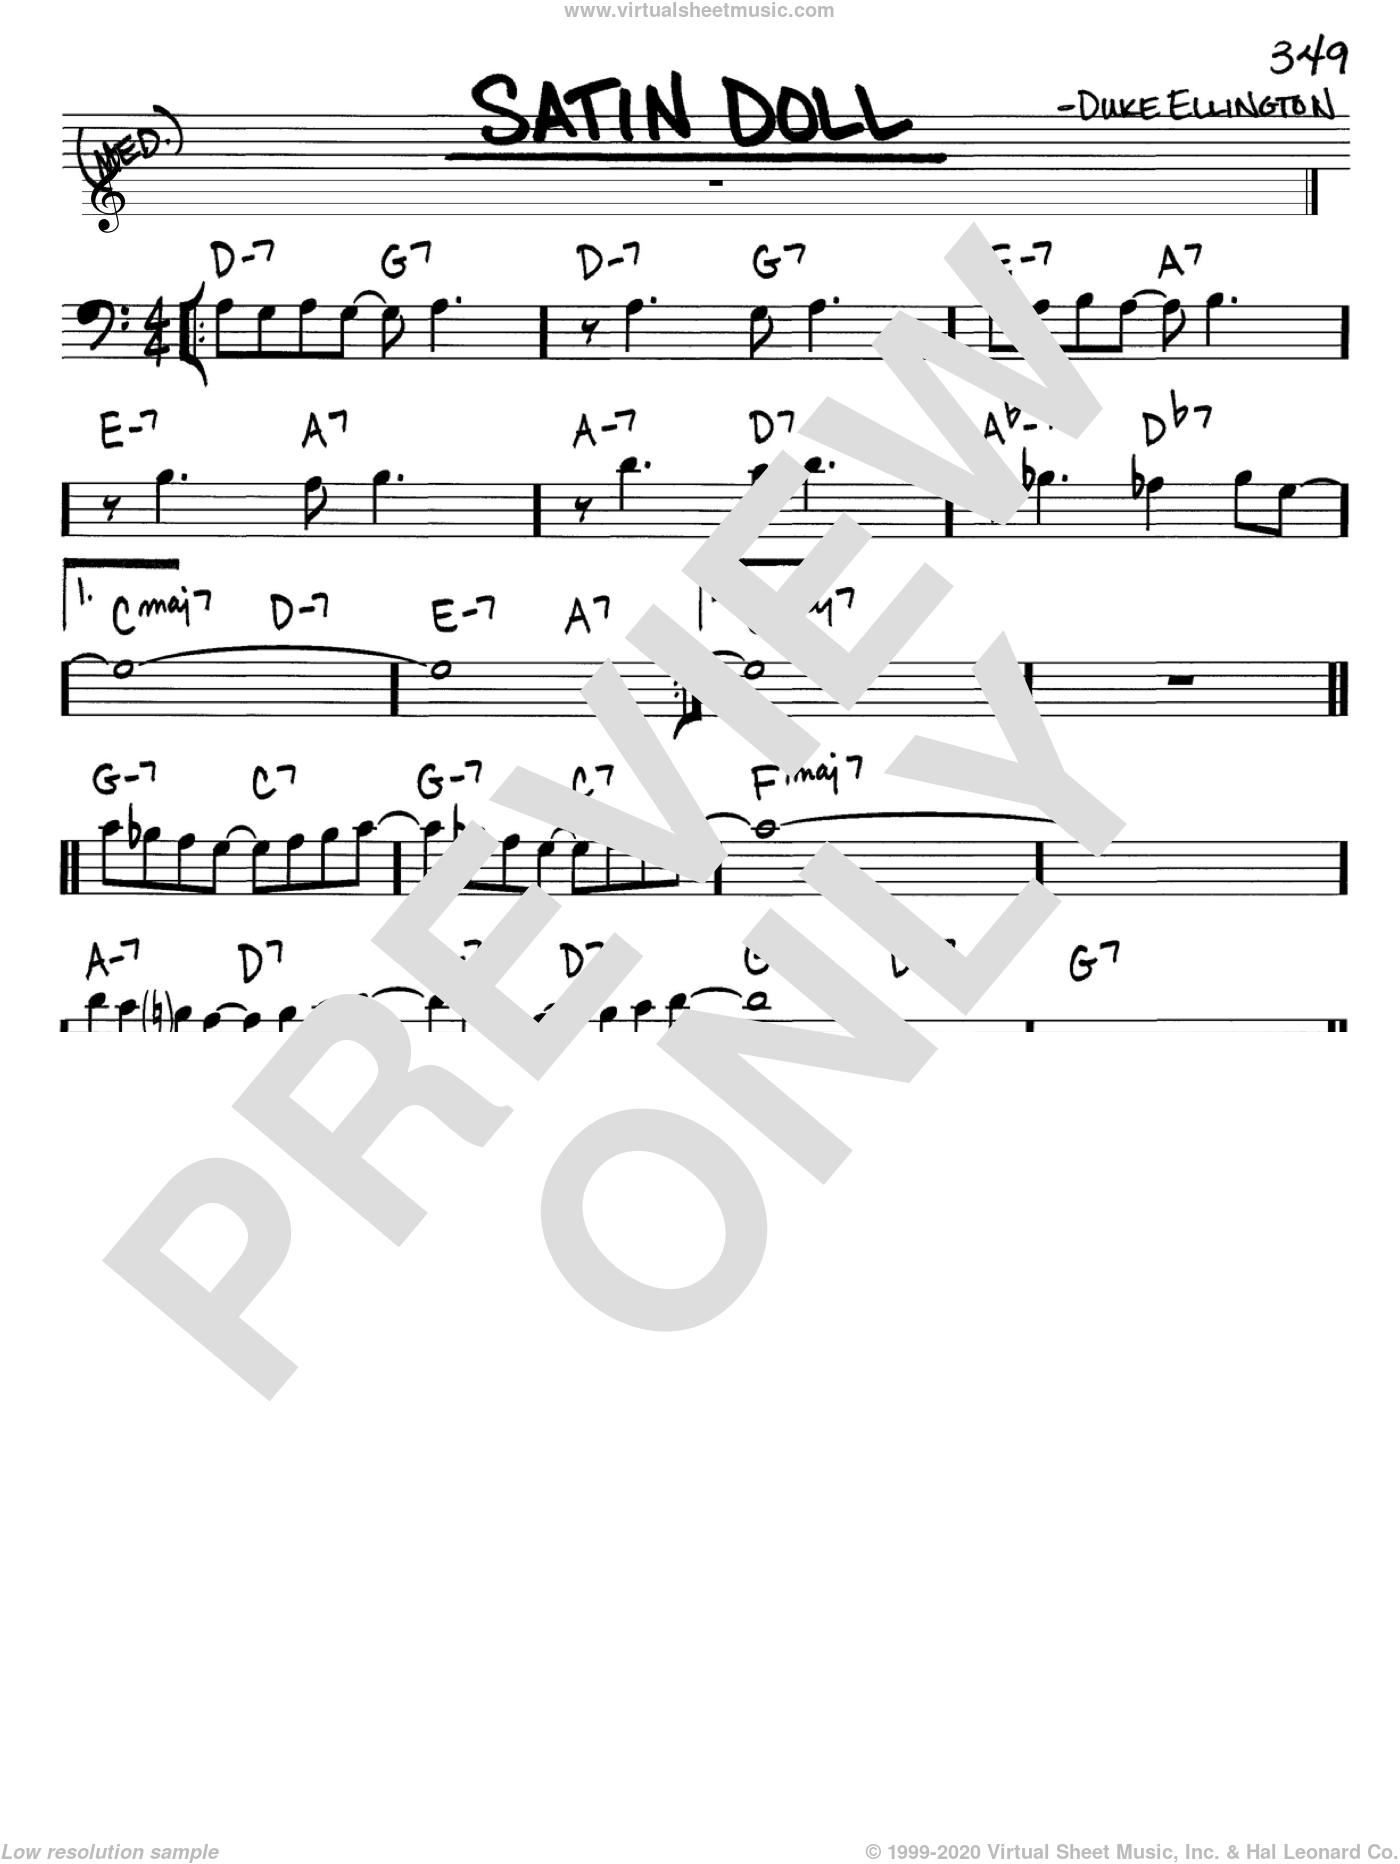 Satin Doll sheet music for voice and other instruments (Bass Clef ) by Duke Ellington, Billy Strayhorn and Johnny Mercer, intermediate voice. Score Image Preview.